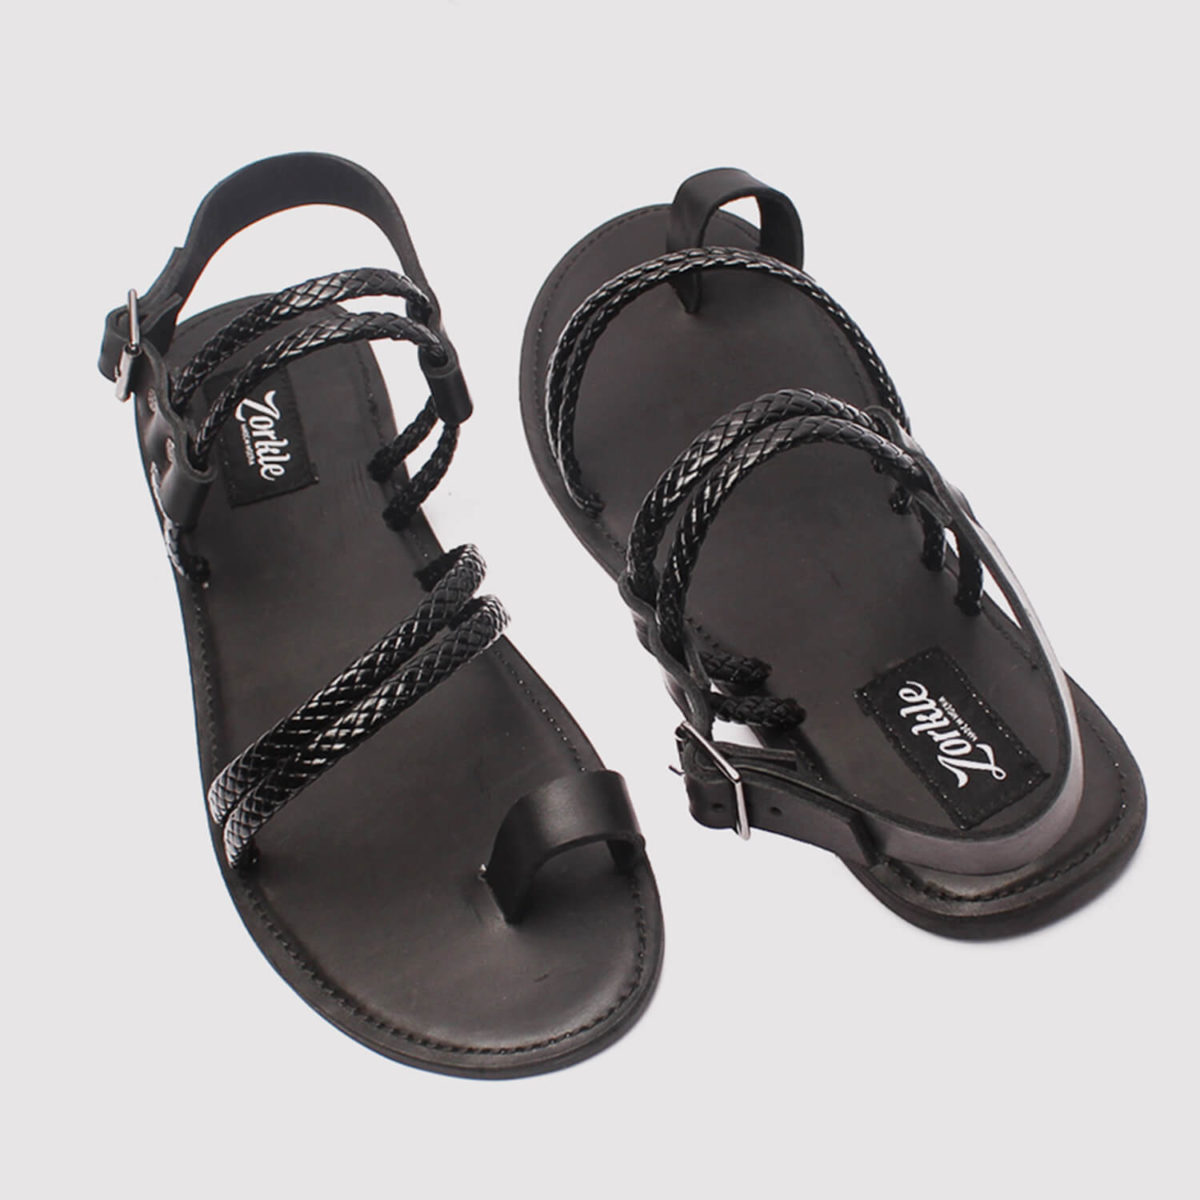 morsi black leather sandals by zorkle shoes lagos nigeria